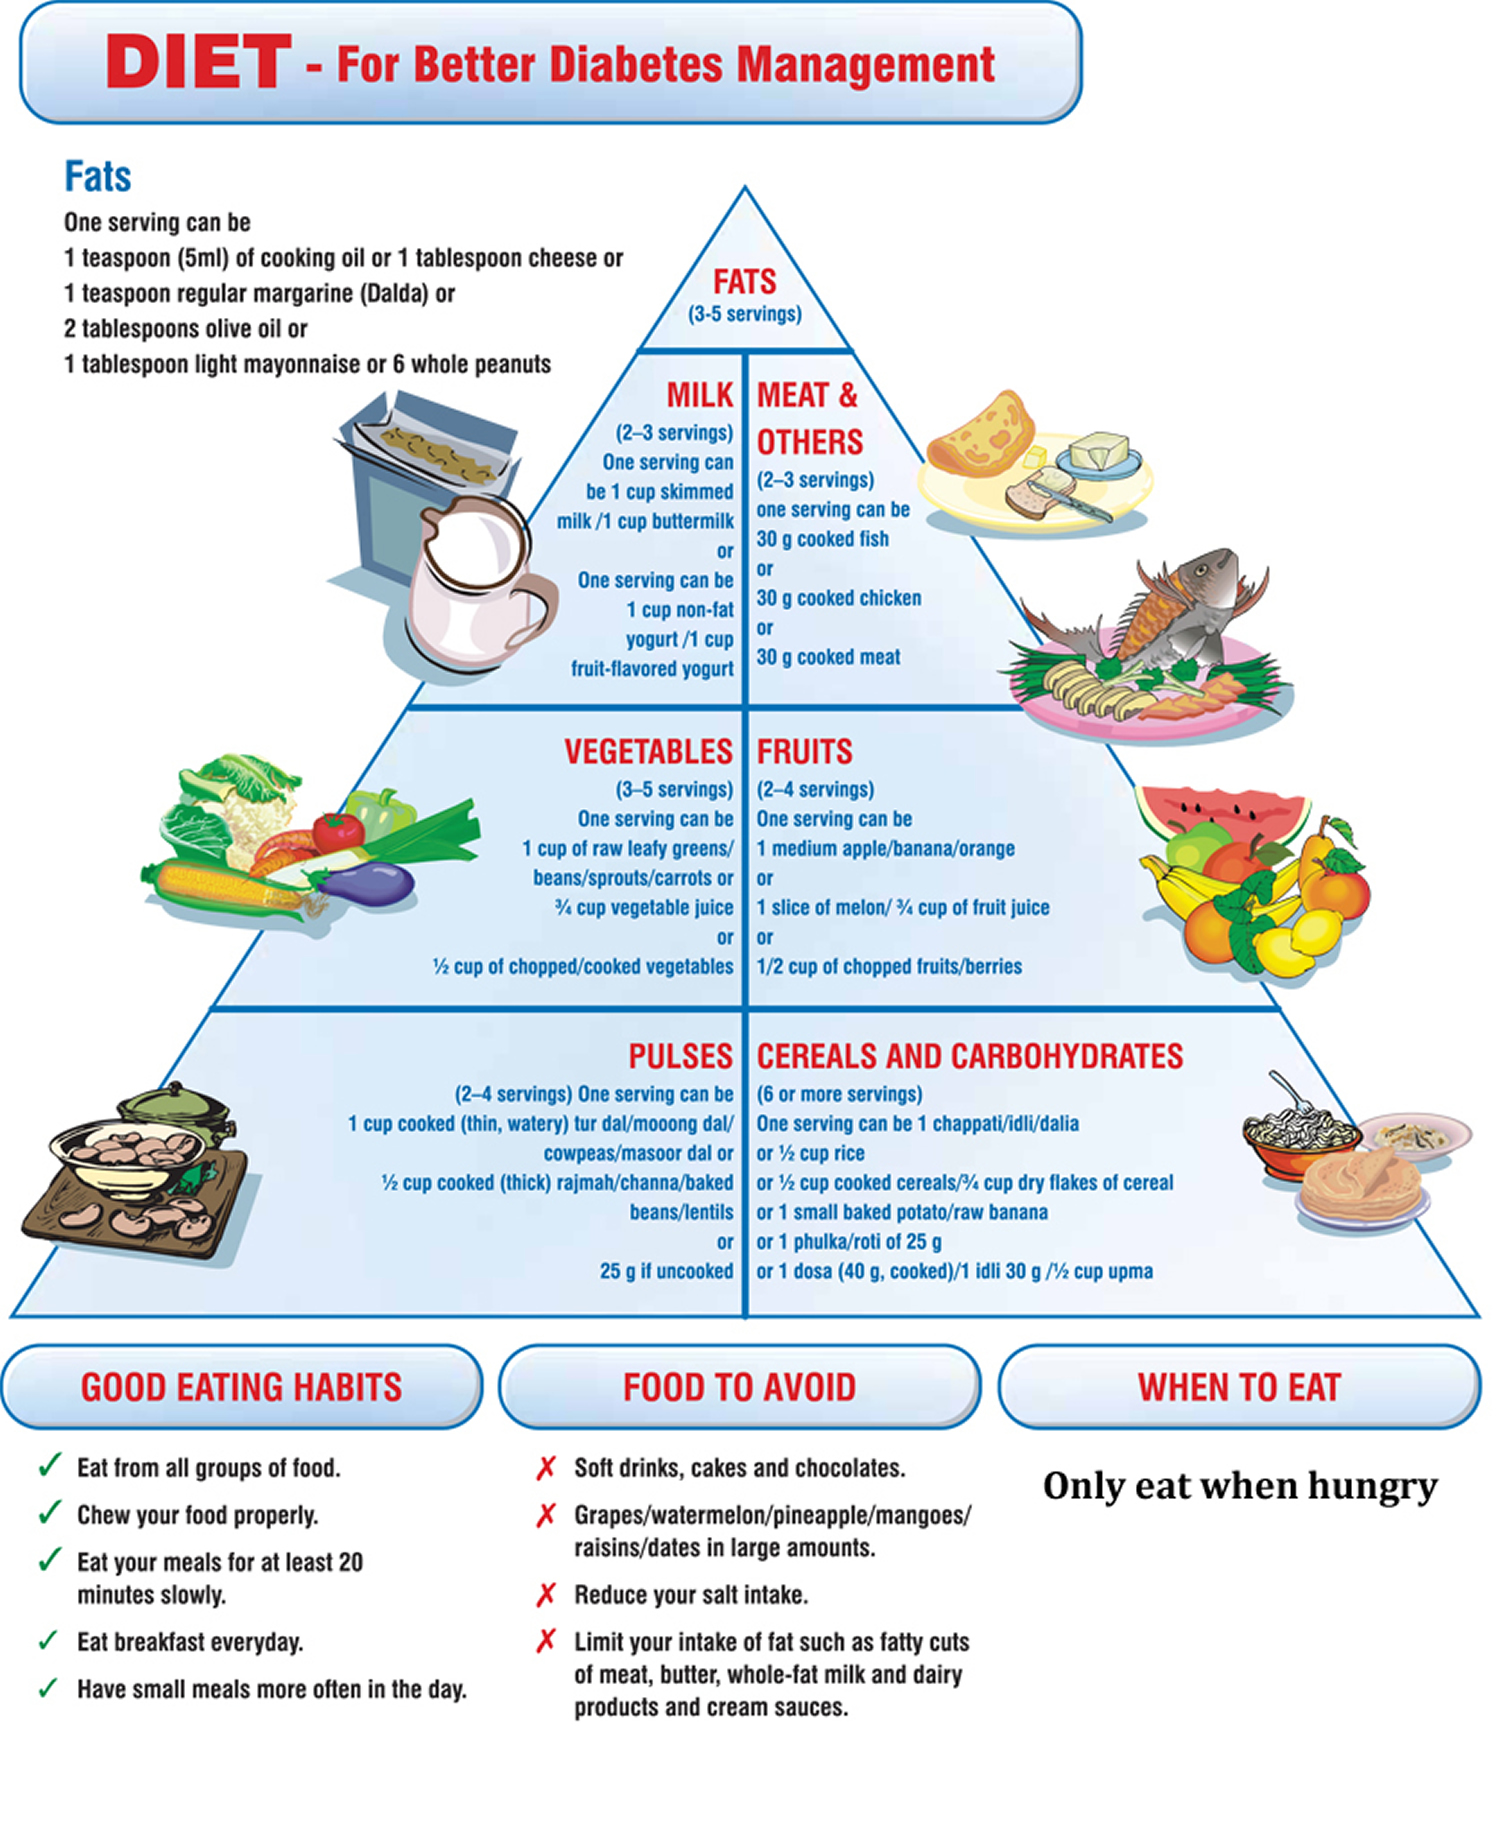 Dietary Supplements for Type 2 Diabetes